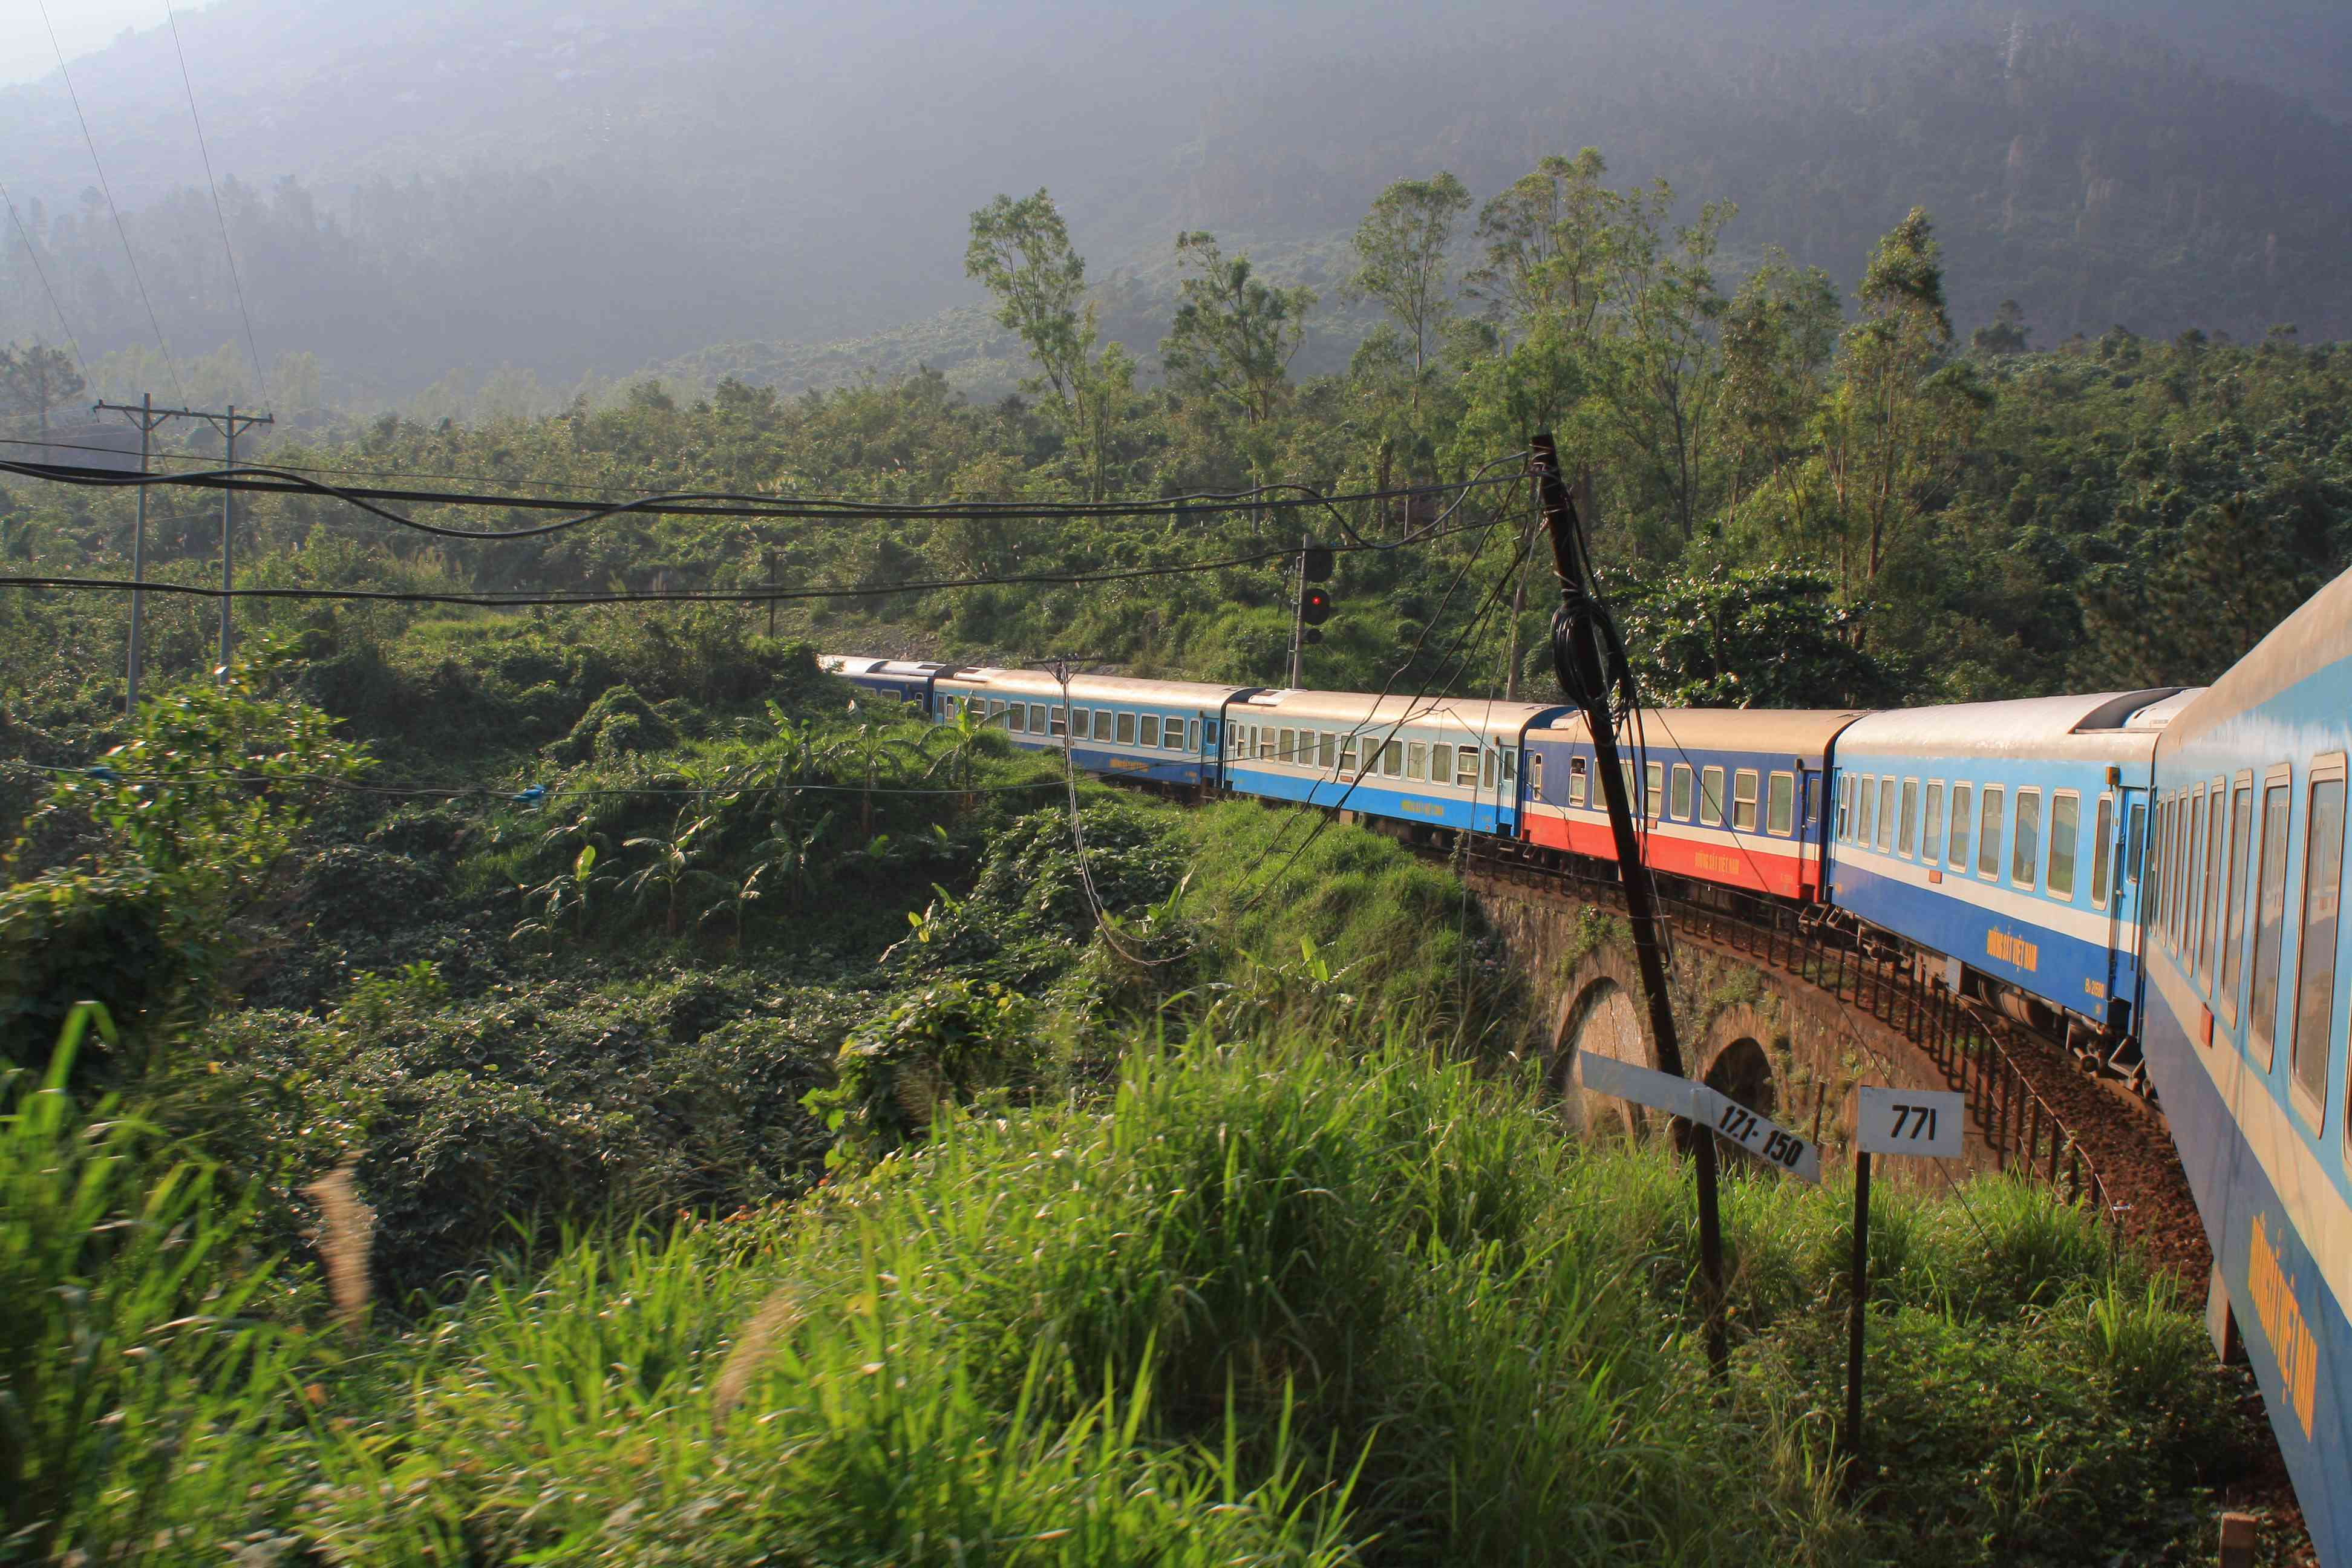 View from train of colorful cars cutting through the jungle